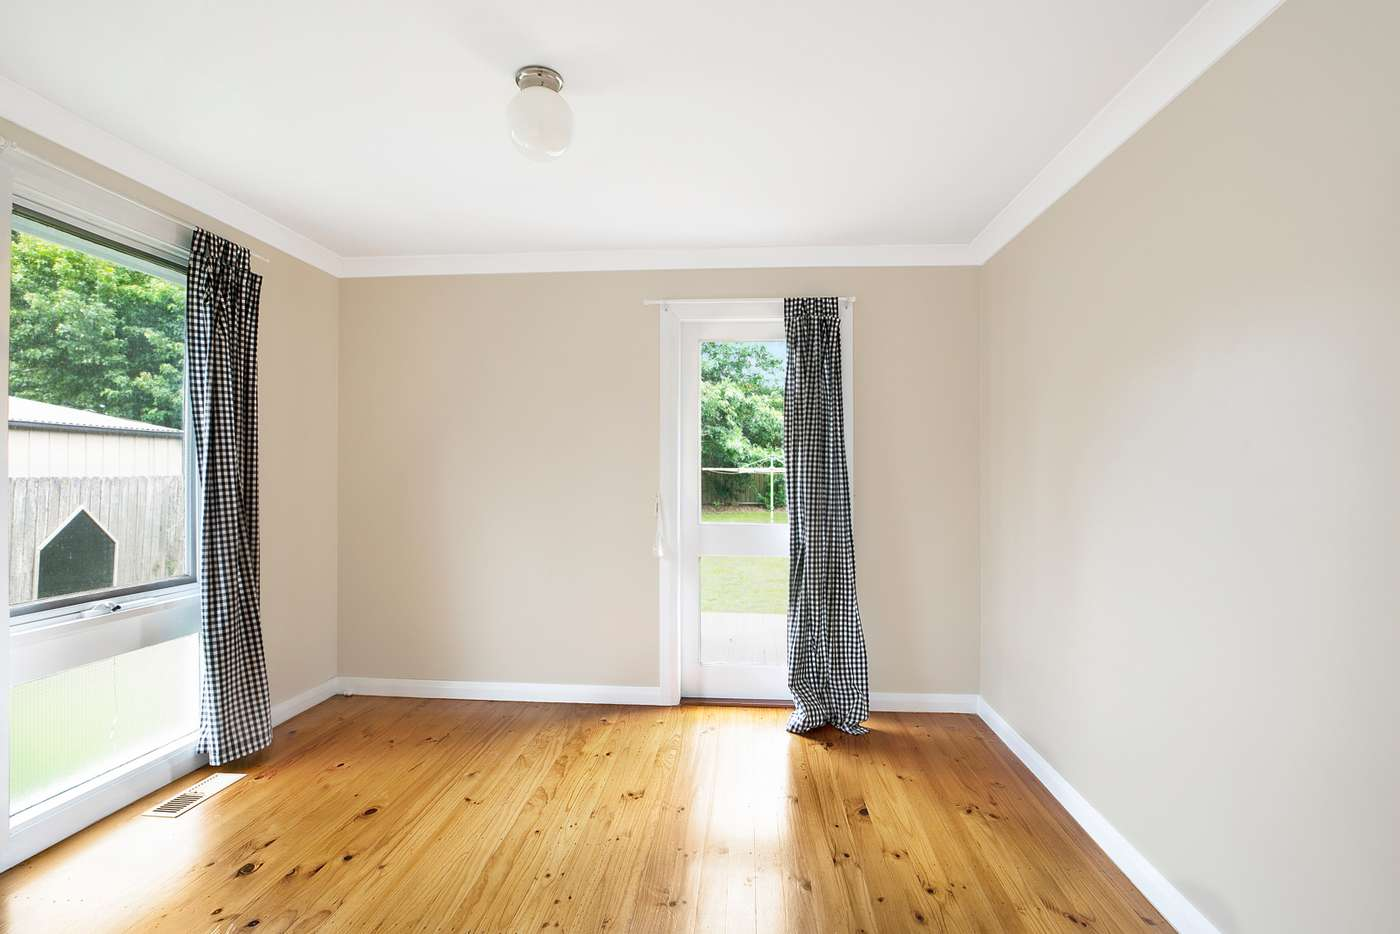 Sixth view of Homely house listing, 6 Sheaffe Street, Bowral NSW 2576